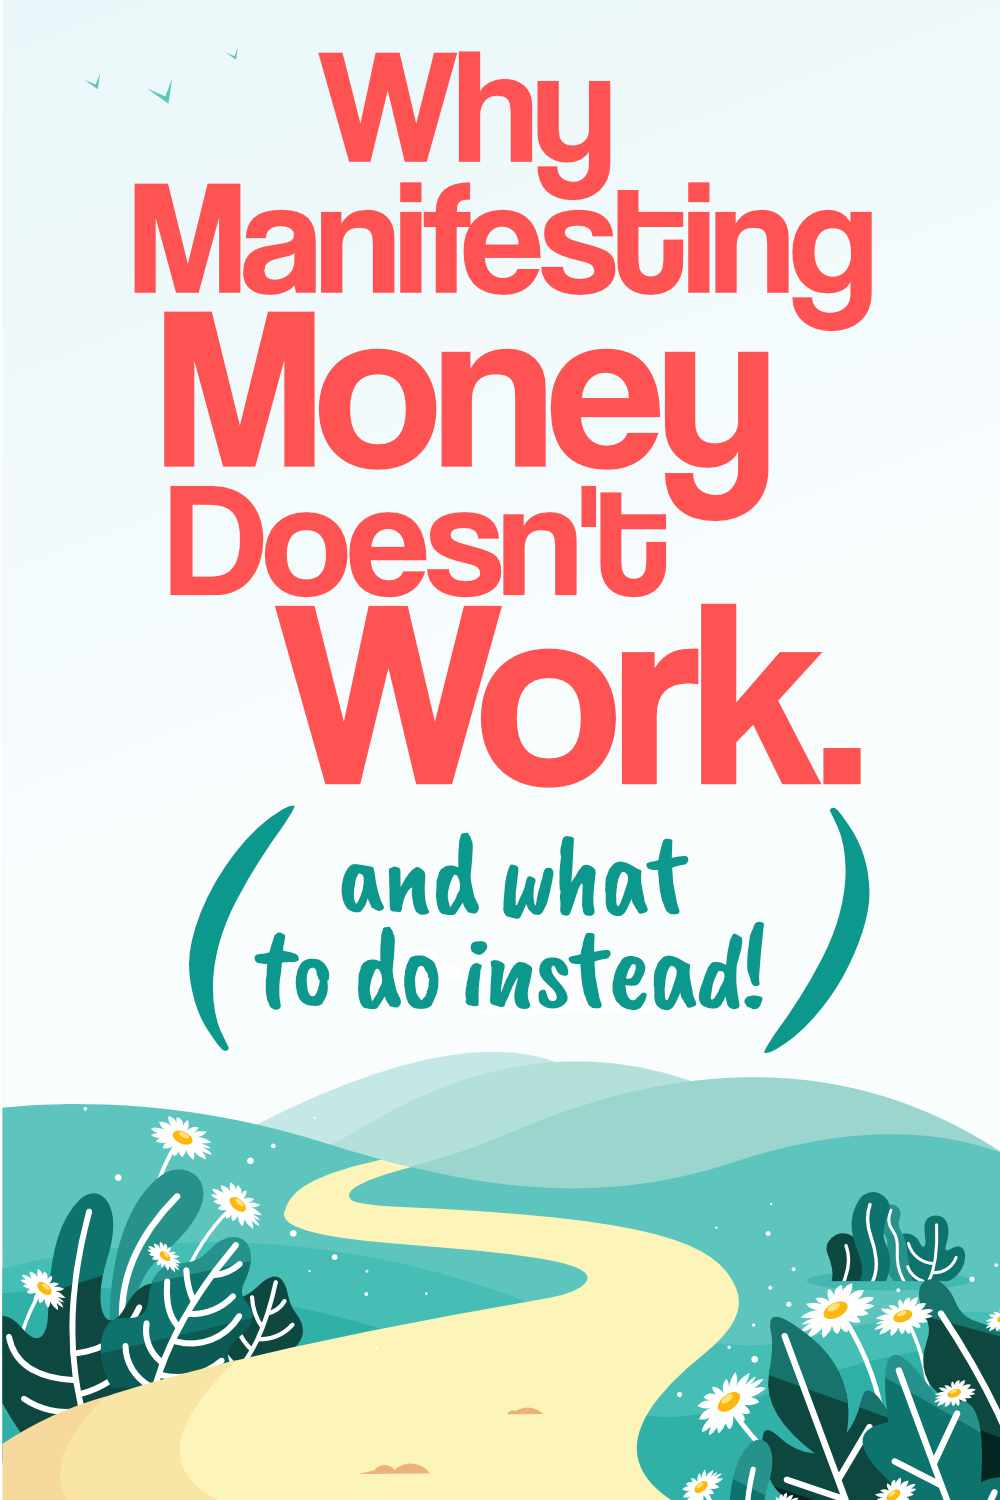 Why Manifesting Money Doesn't Work (and what to do instead!)